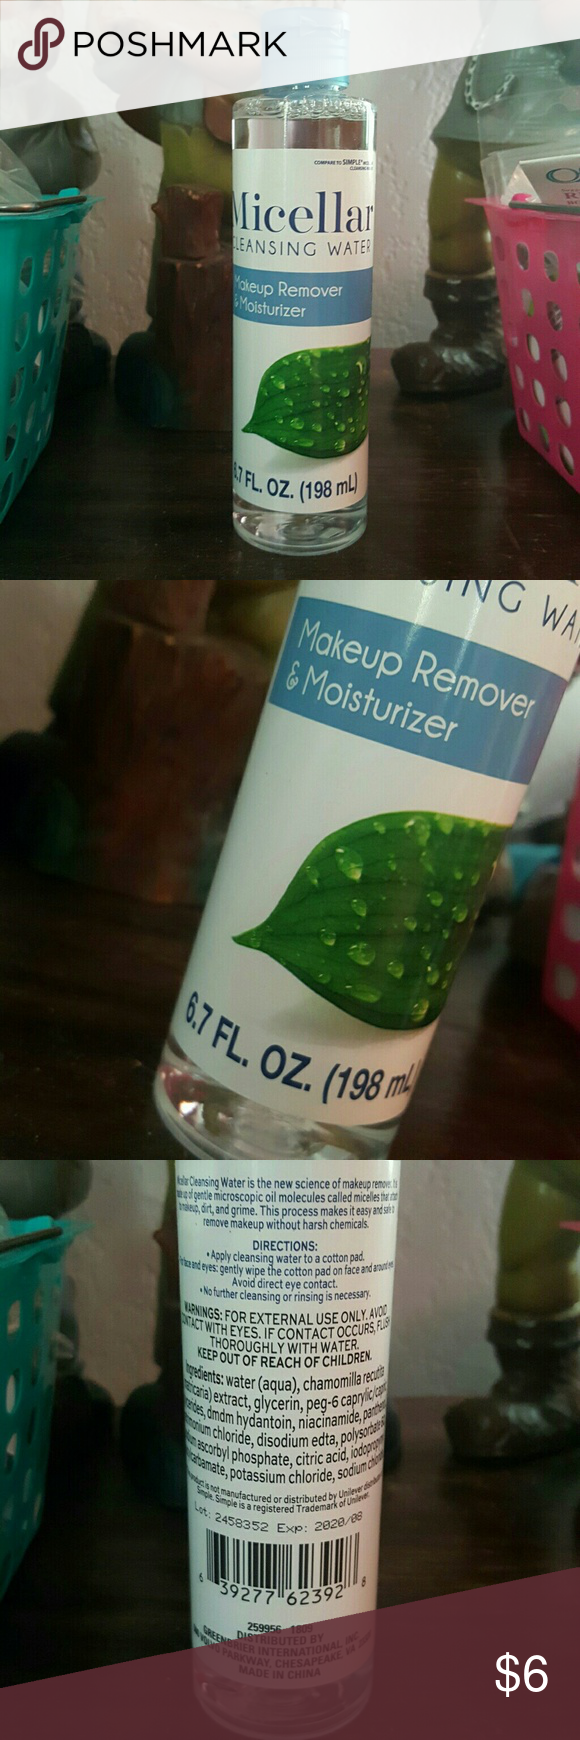 Micellar Water😊 (With images) Micellar water, Cleansing